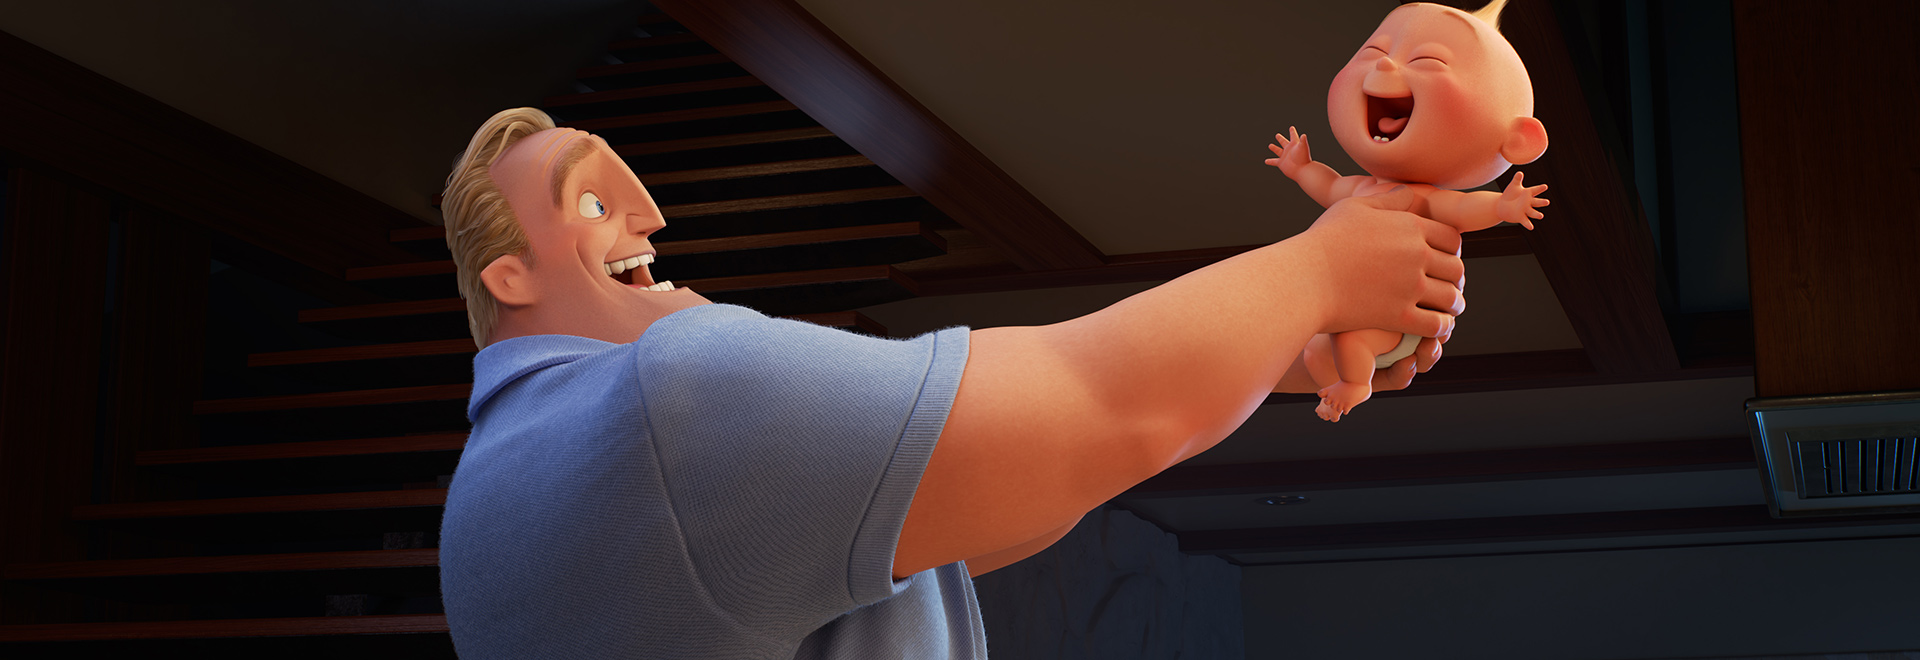 SWITCH: 'Incredibles 2' Teaser Trailer